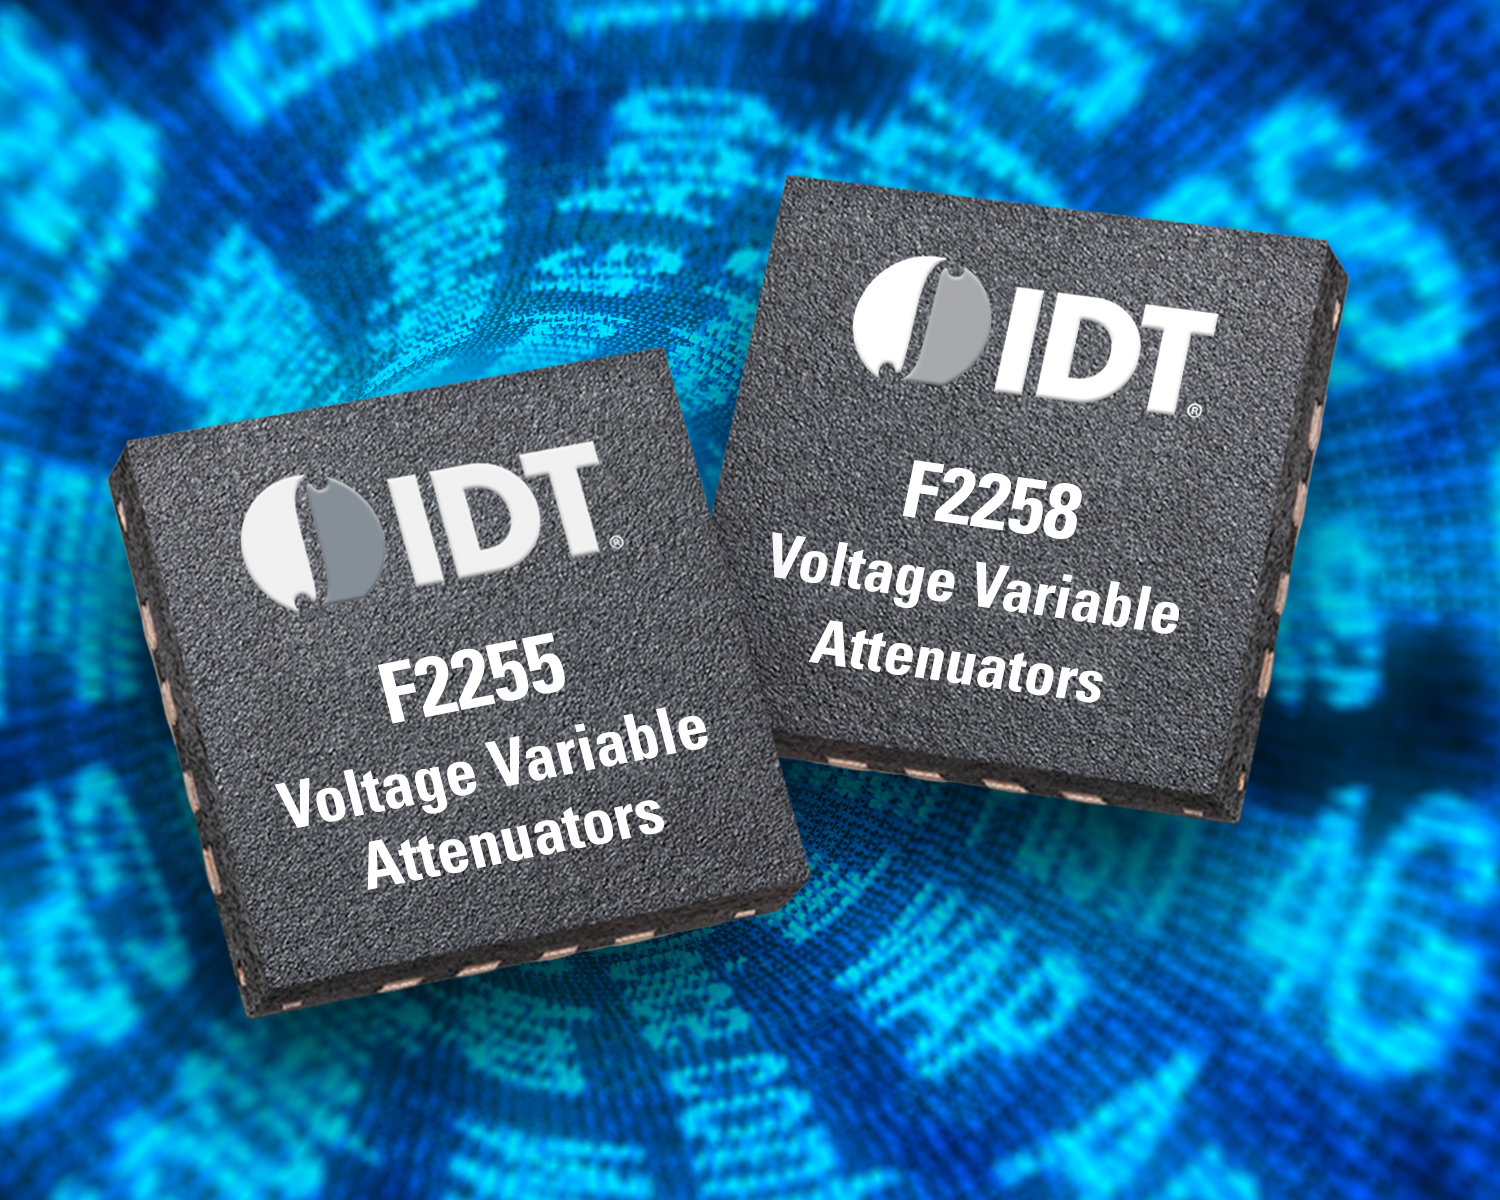 Idt Introduces New Voltage Variable Attenuators Delivering Up To Controlled Attenuator Dean Solov 408 284 2608 Public Relations Manager Deansolovidtcom